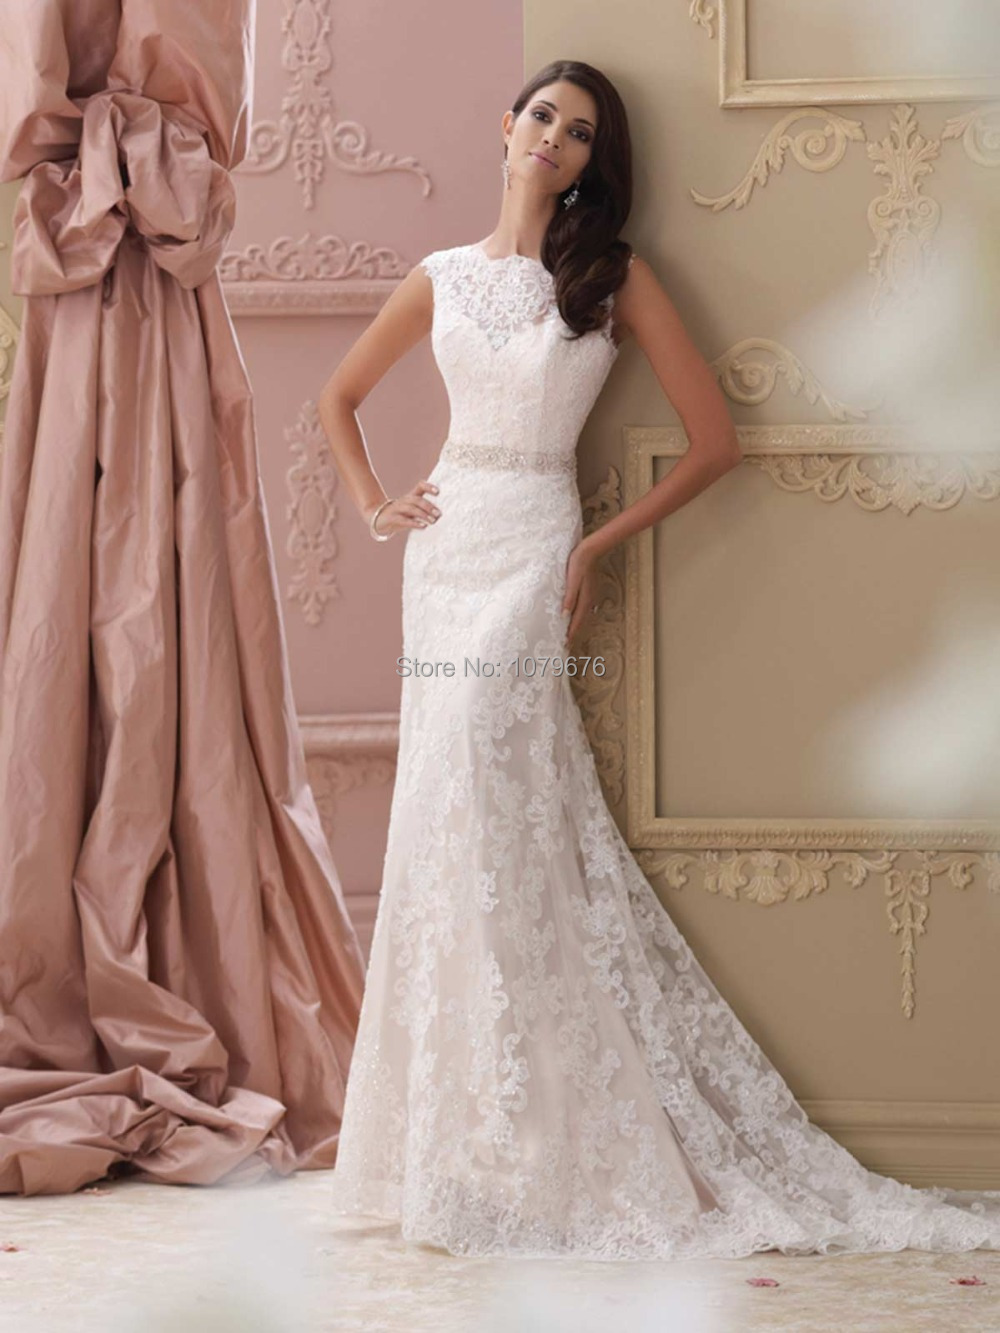 Vintage Lace Wedding Dress With Cap Sleeves 32